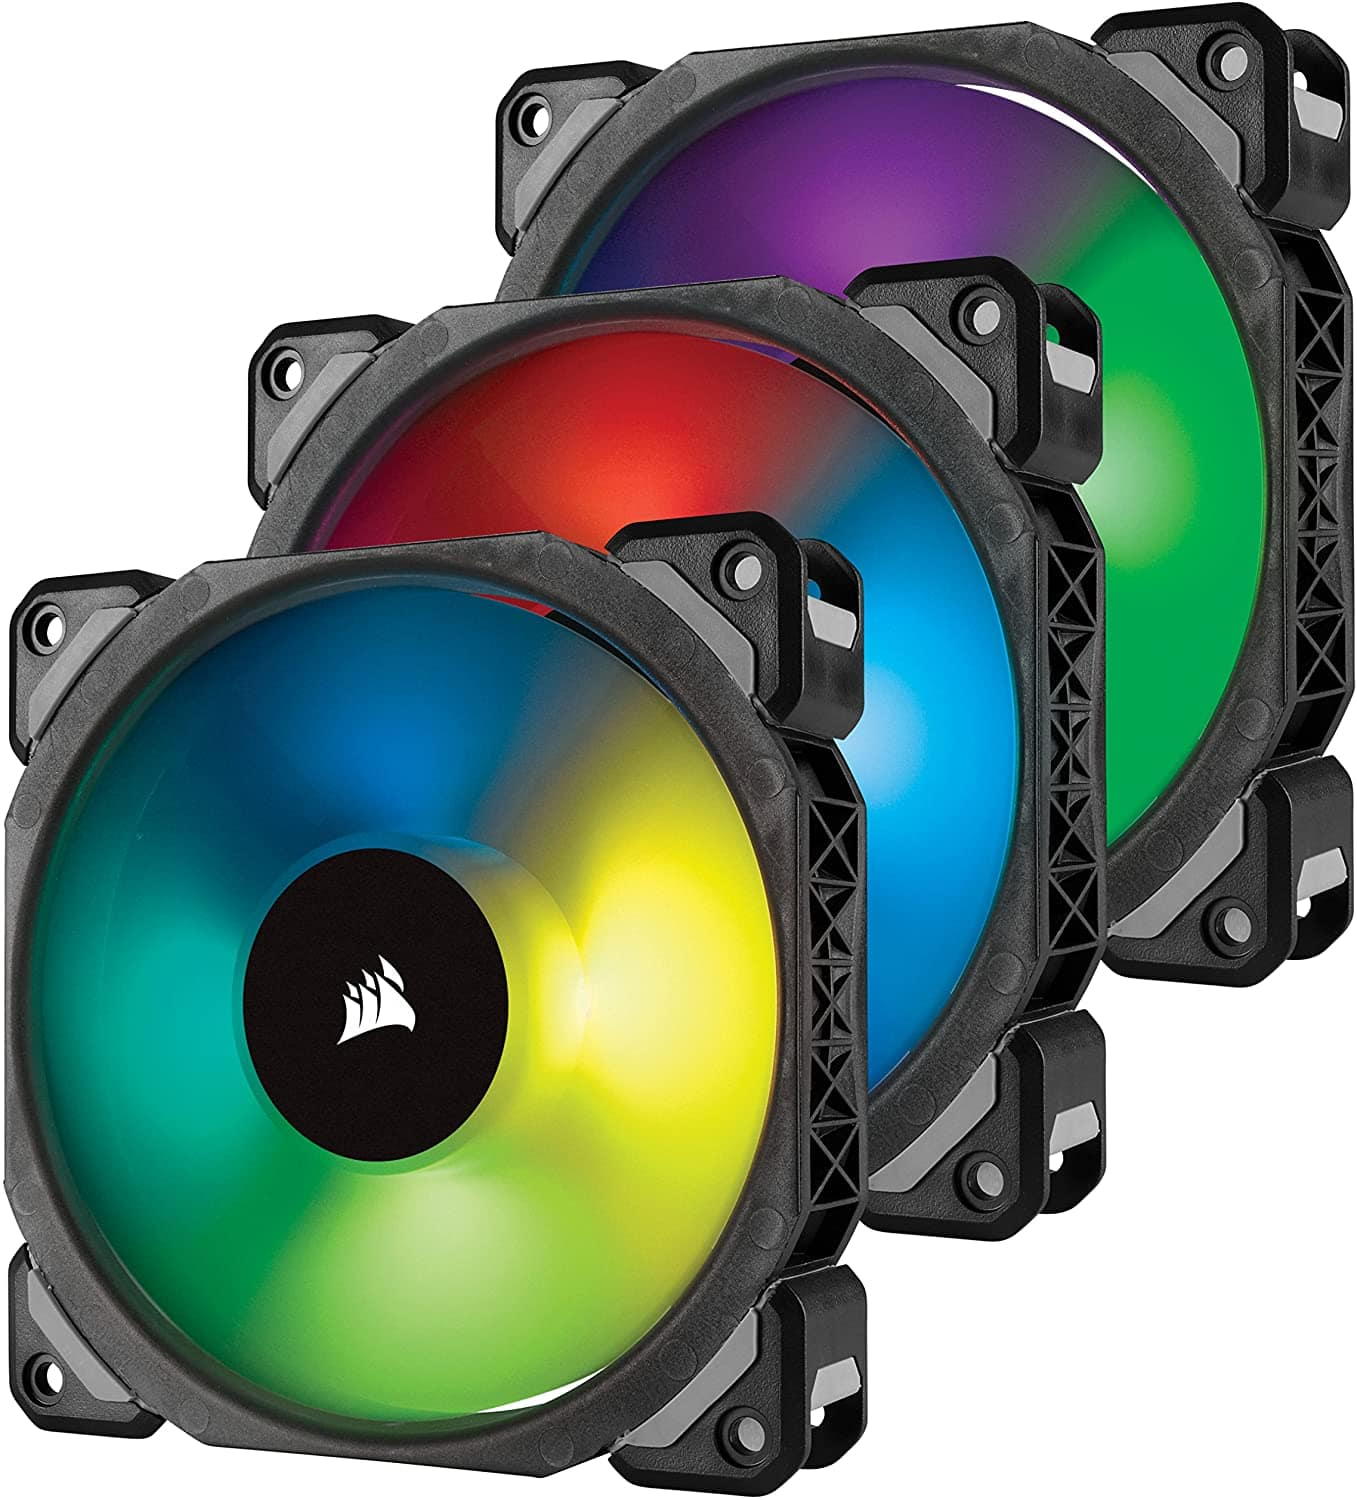 Corsair ML120 Triple Pack with Node Pro - $90 + Free Shipping